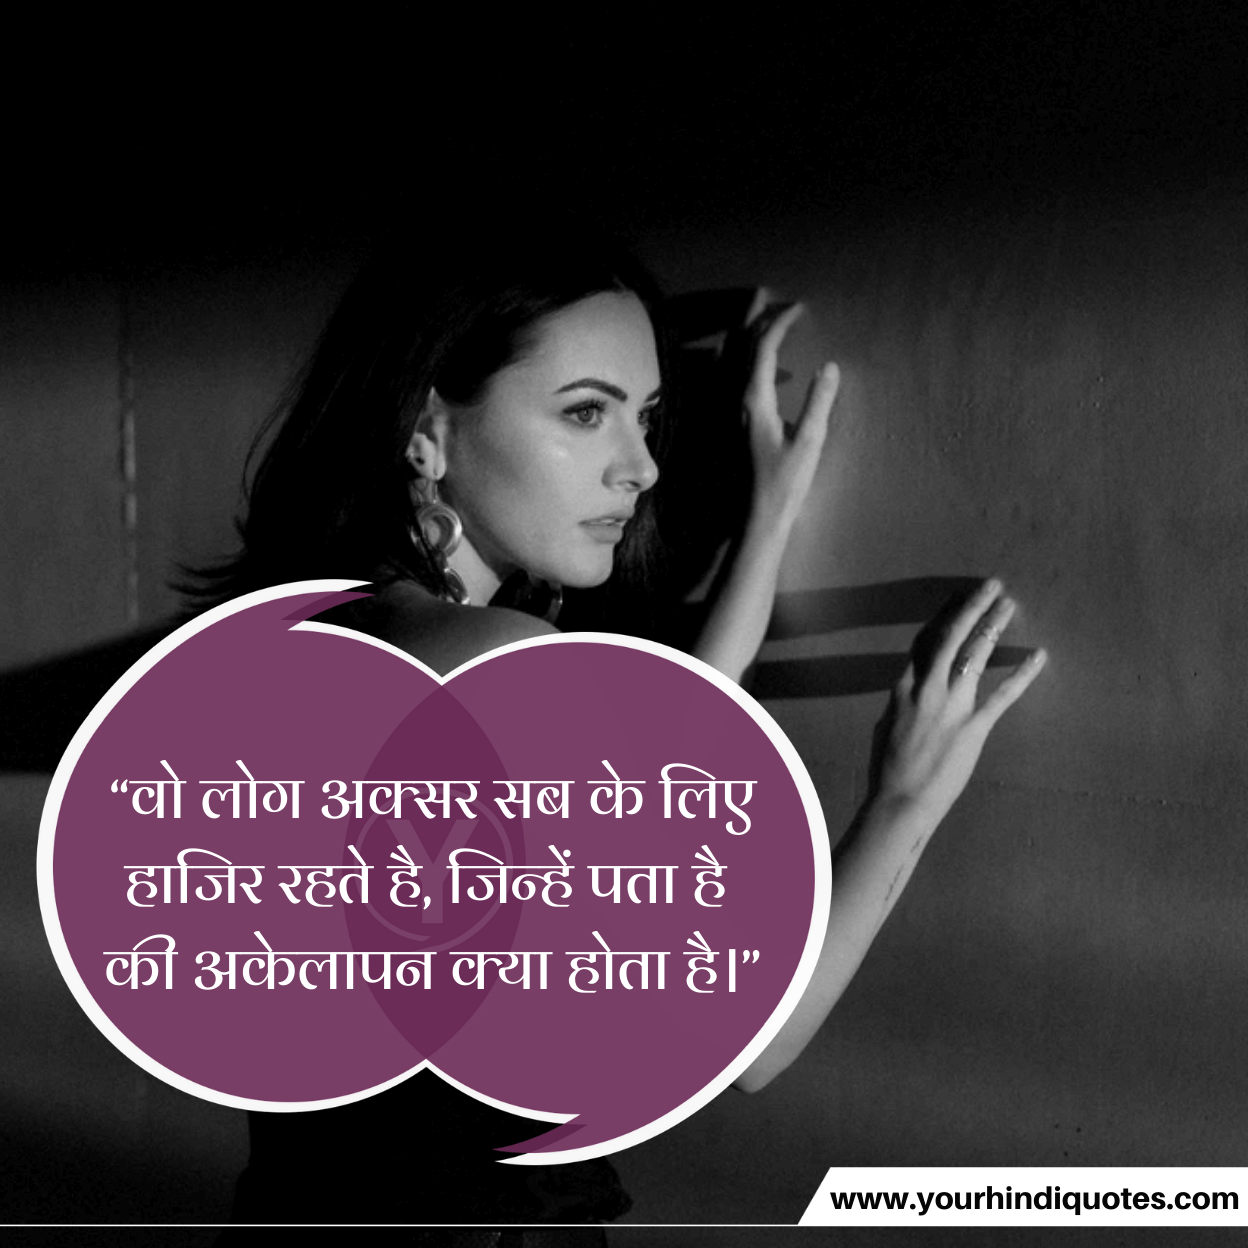 Emotional Hindi quotes picture